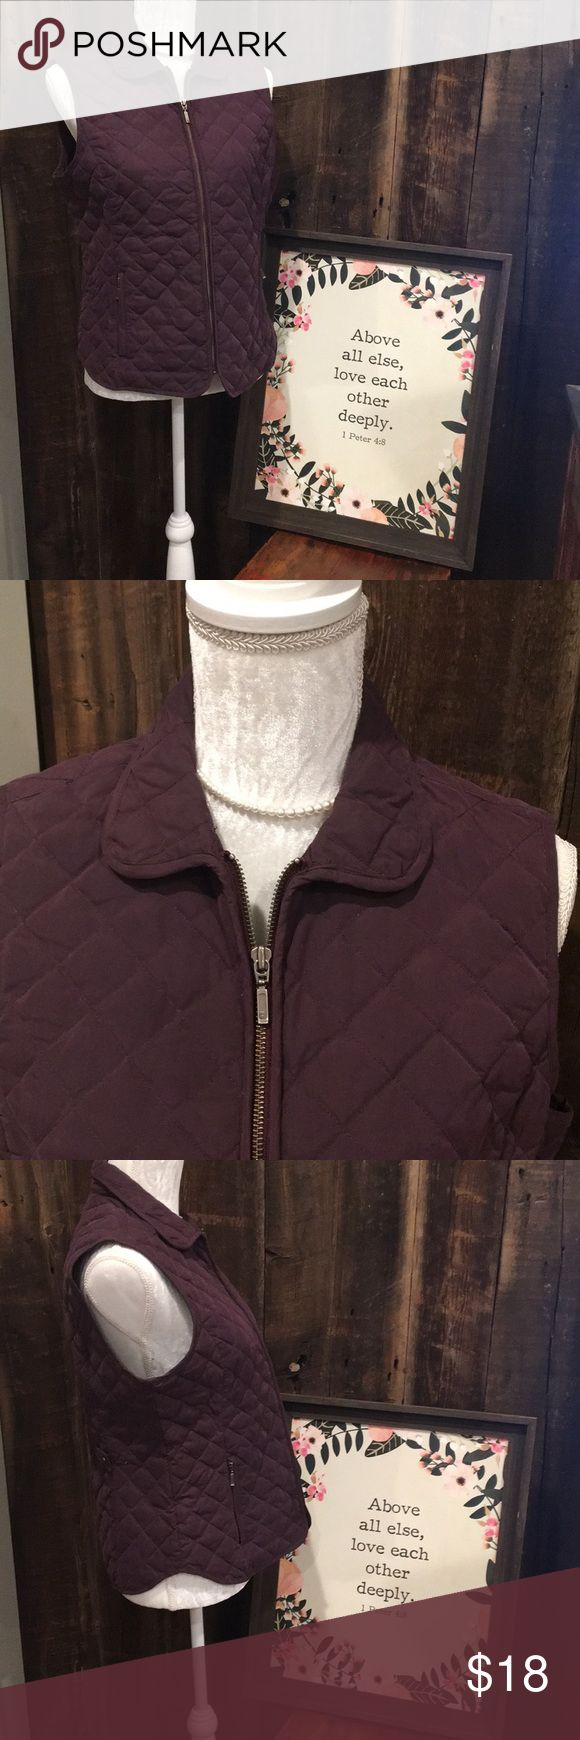 "Eddie Bauer Deep Plum Goose Down Vest Fully zippered quilted vest filled with goose down, deep plum in color. Two zippered exterior pockets, one interior pocket.  Approximate measurements are taken while garment is laying flat. Shoulder to hem: 24"" Armpit to armpit: 20"" Eddie Bauer Jackets & Coats Vests"